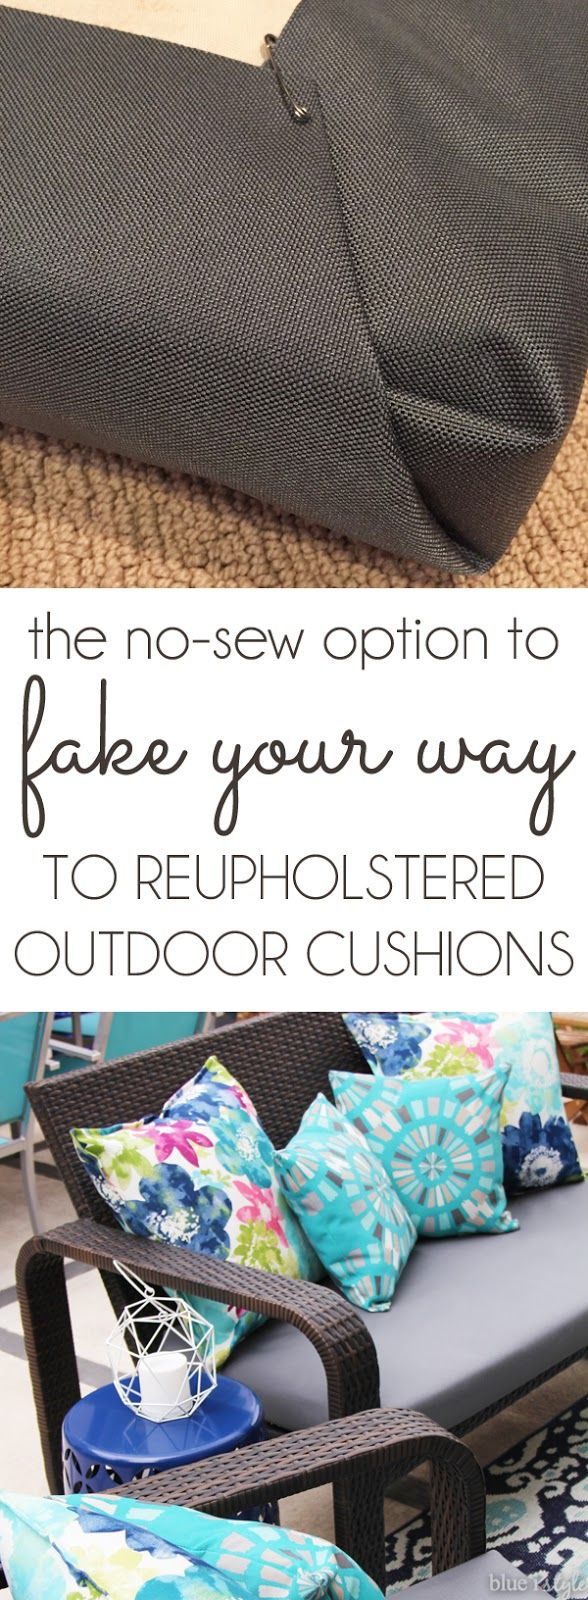 diy with style} The No-Sew Way to Reupholster Outdoor Cushions ...